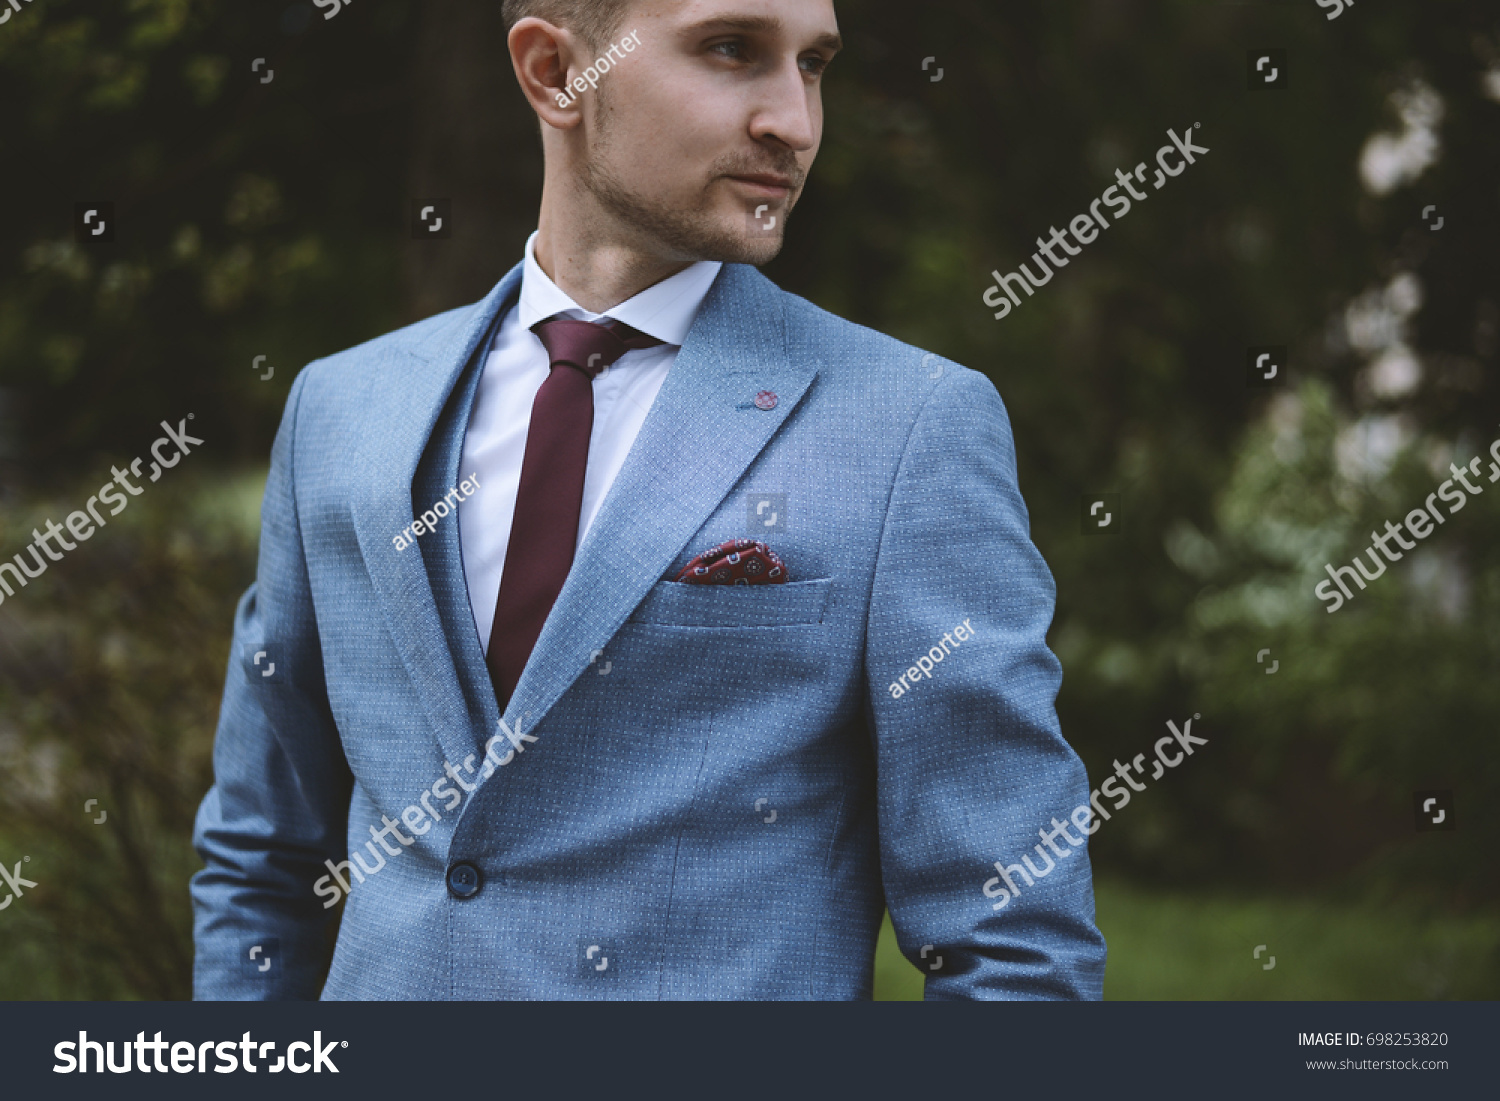 Unique Wedding Suit Hire Coventry Gift - Womens Dresses & Gowns ...